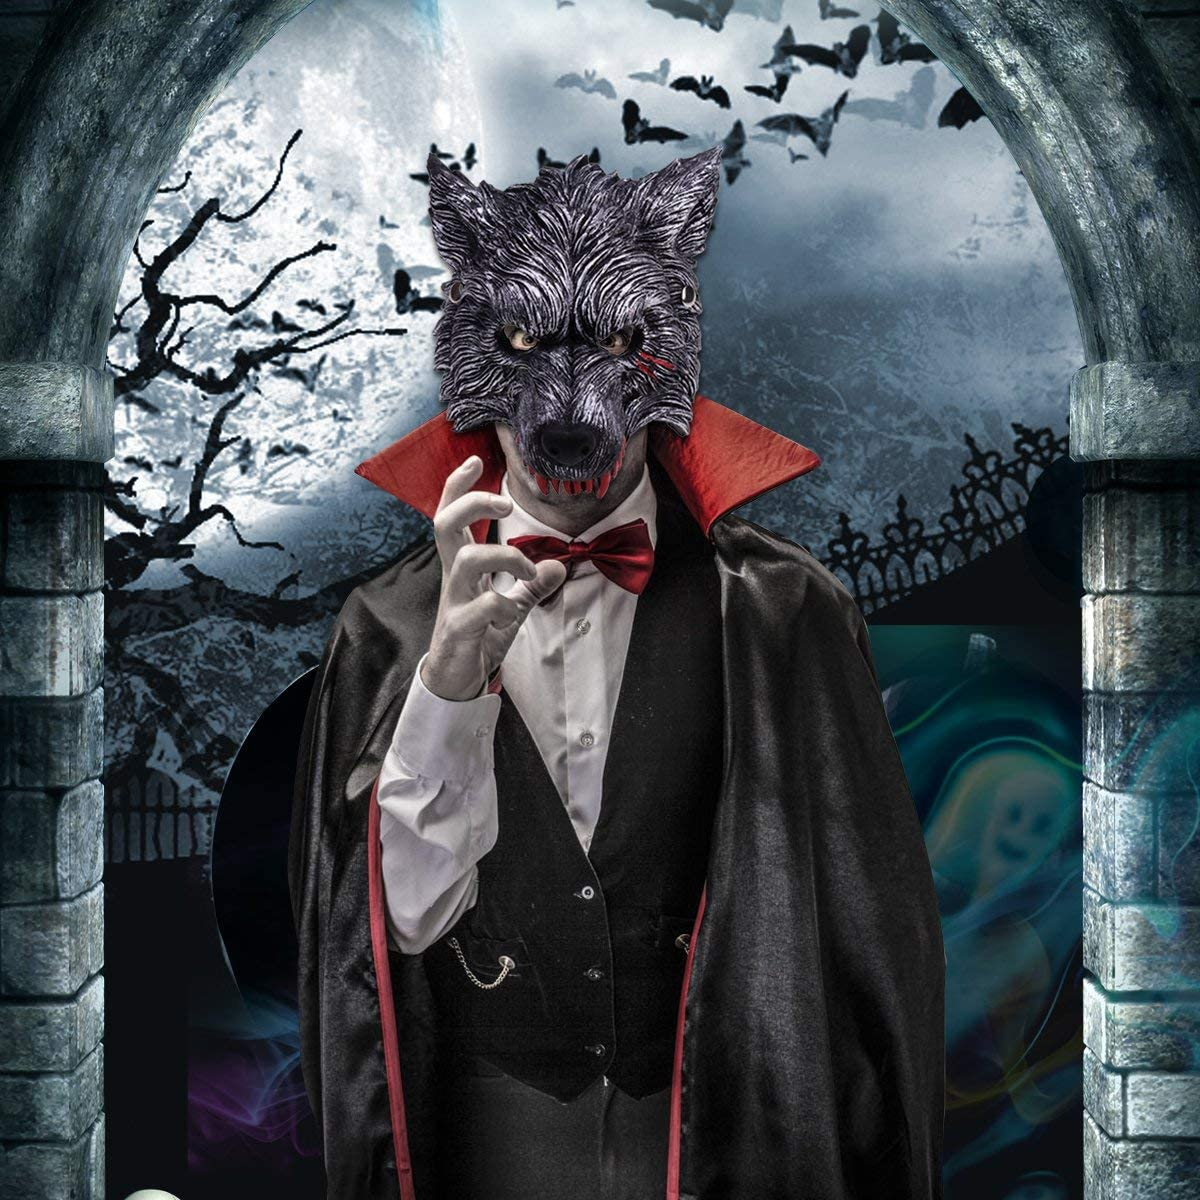 Halloween Wolf Head Mask with Blood Stains, Dark Grey Half Wolf Mask with Vivid Design for Party Decoration